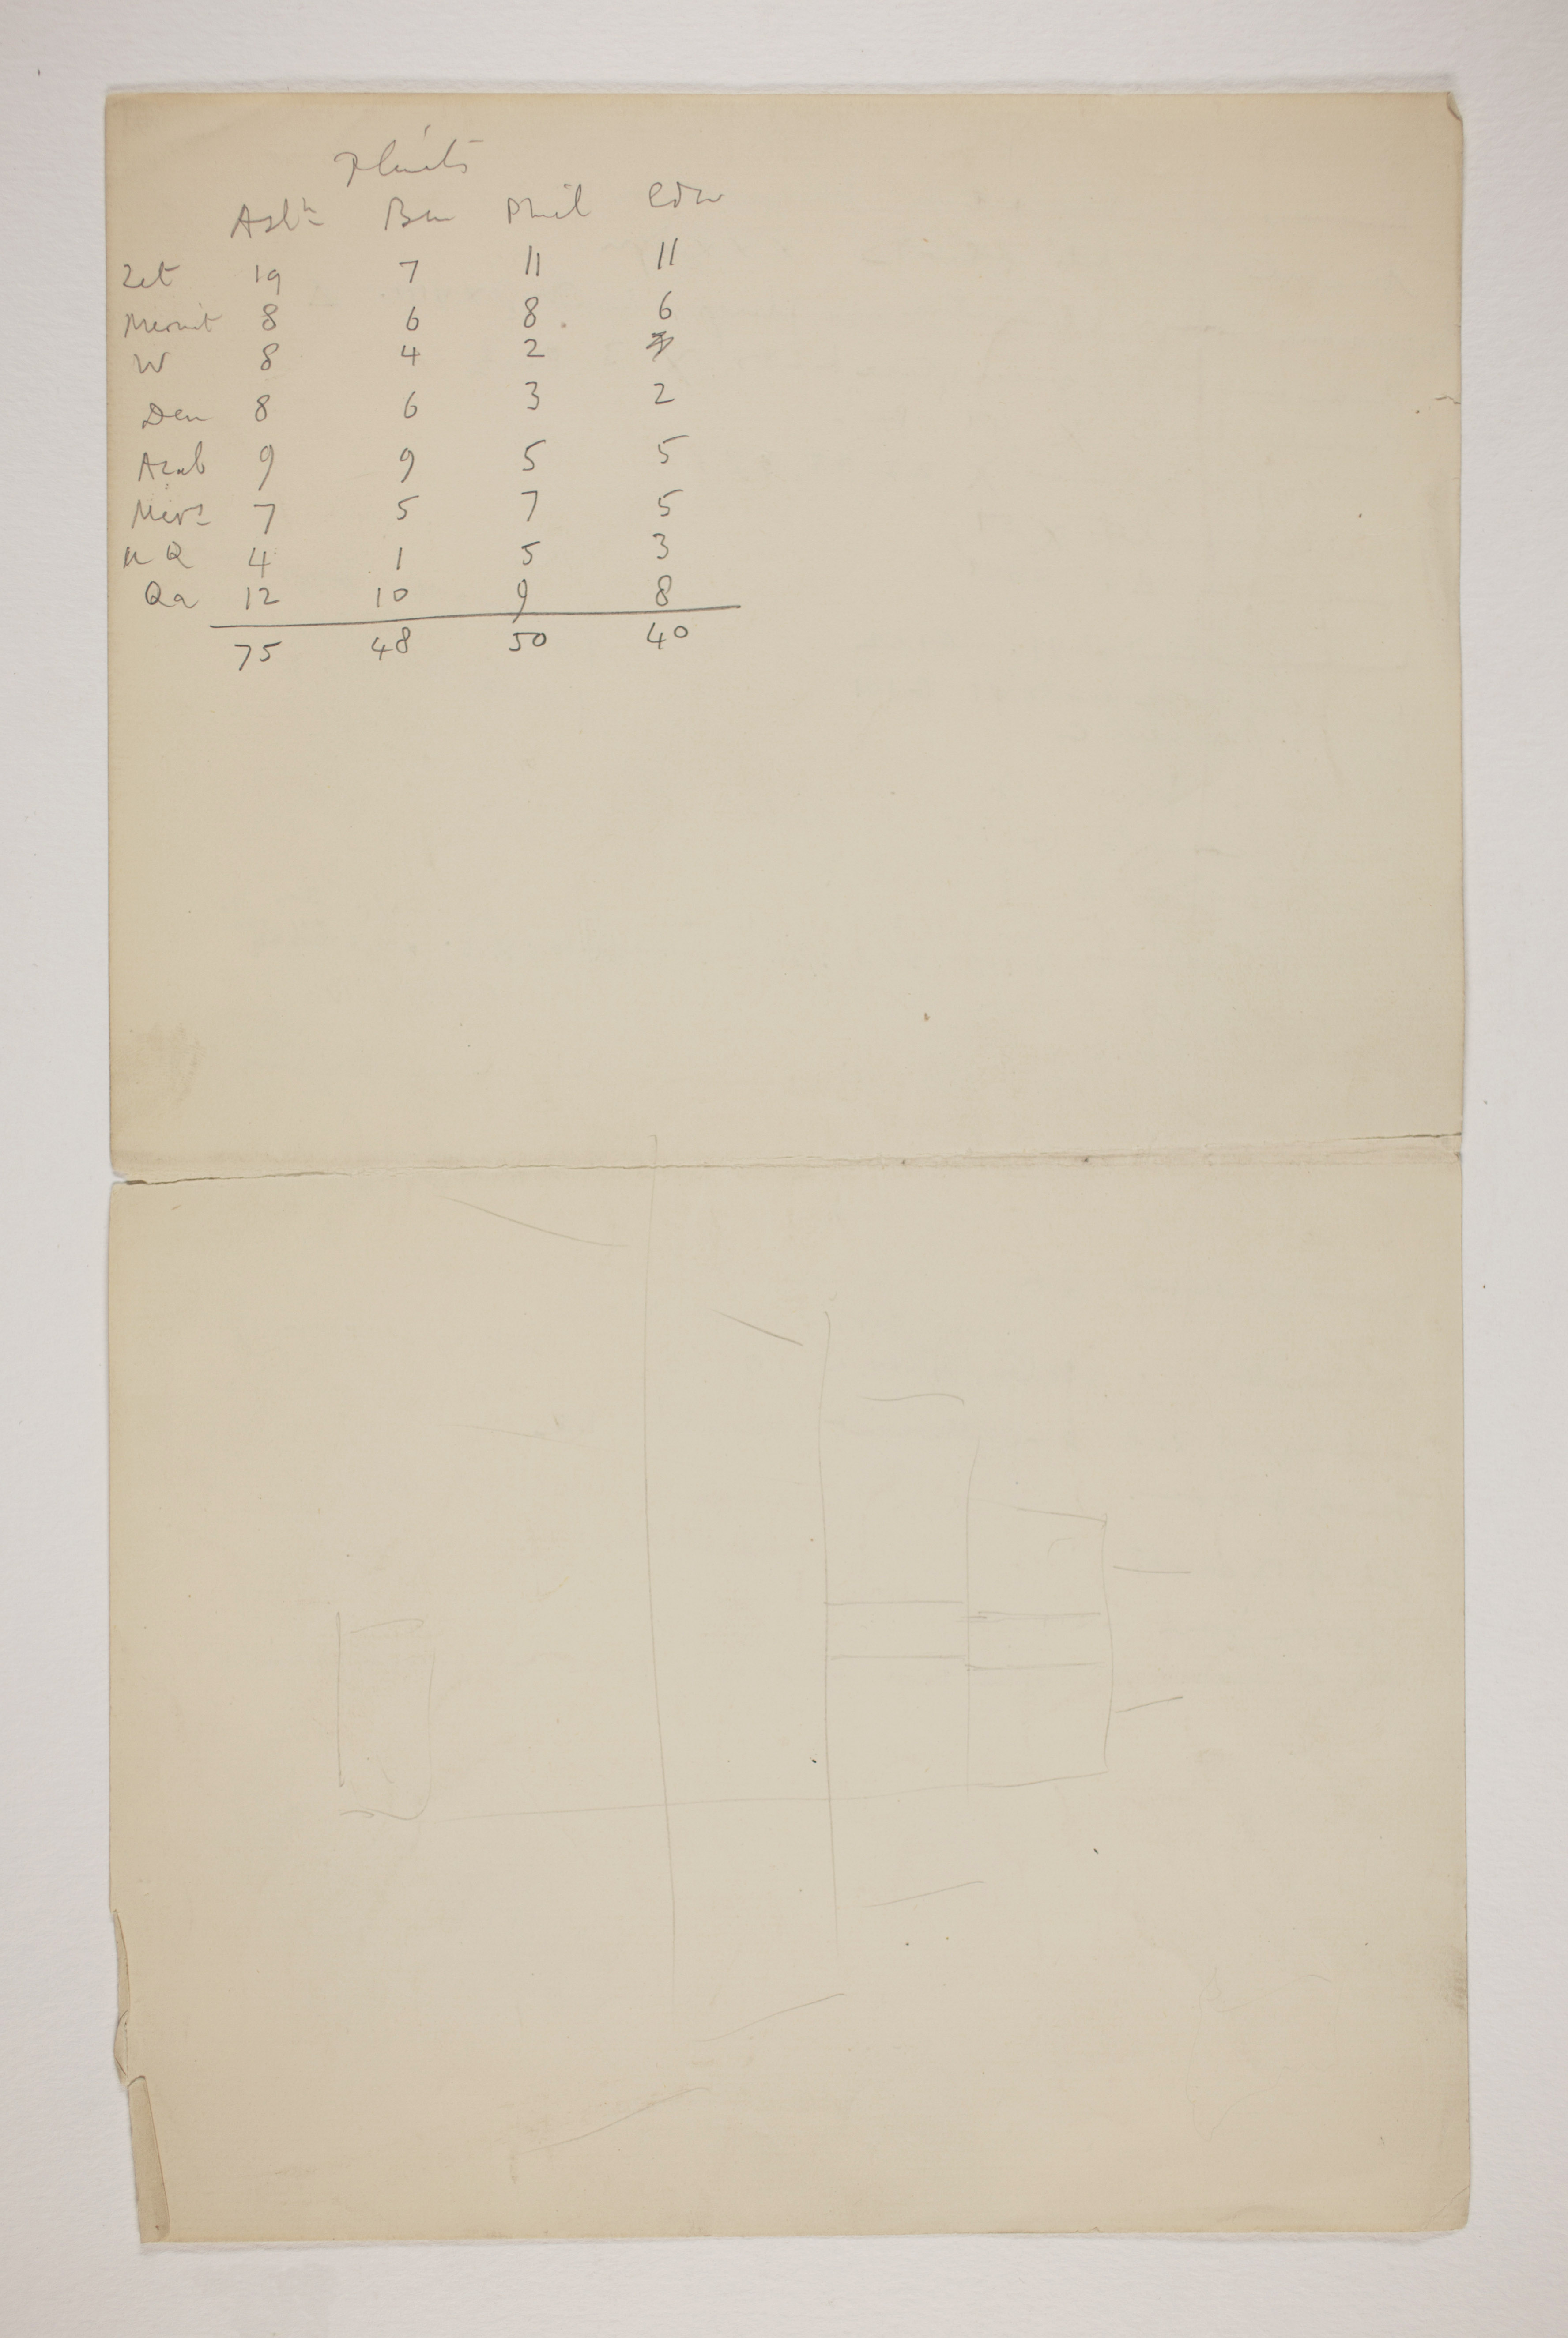 1899-1900 Abydos Multiple institution list PMA/WFP1/D/8/15.2